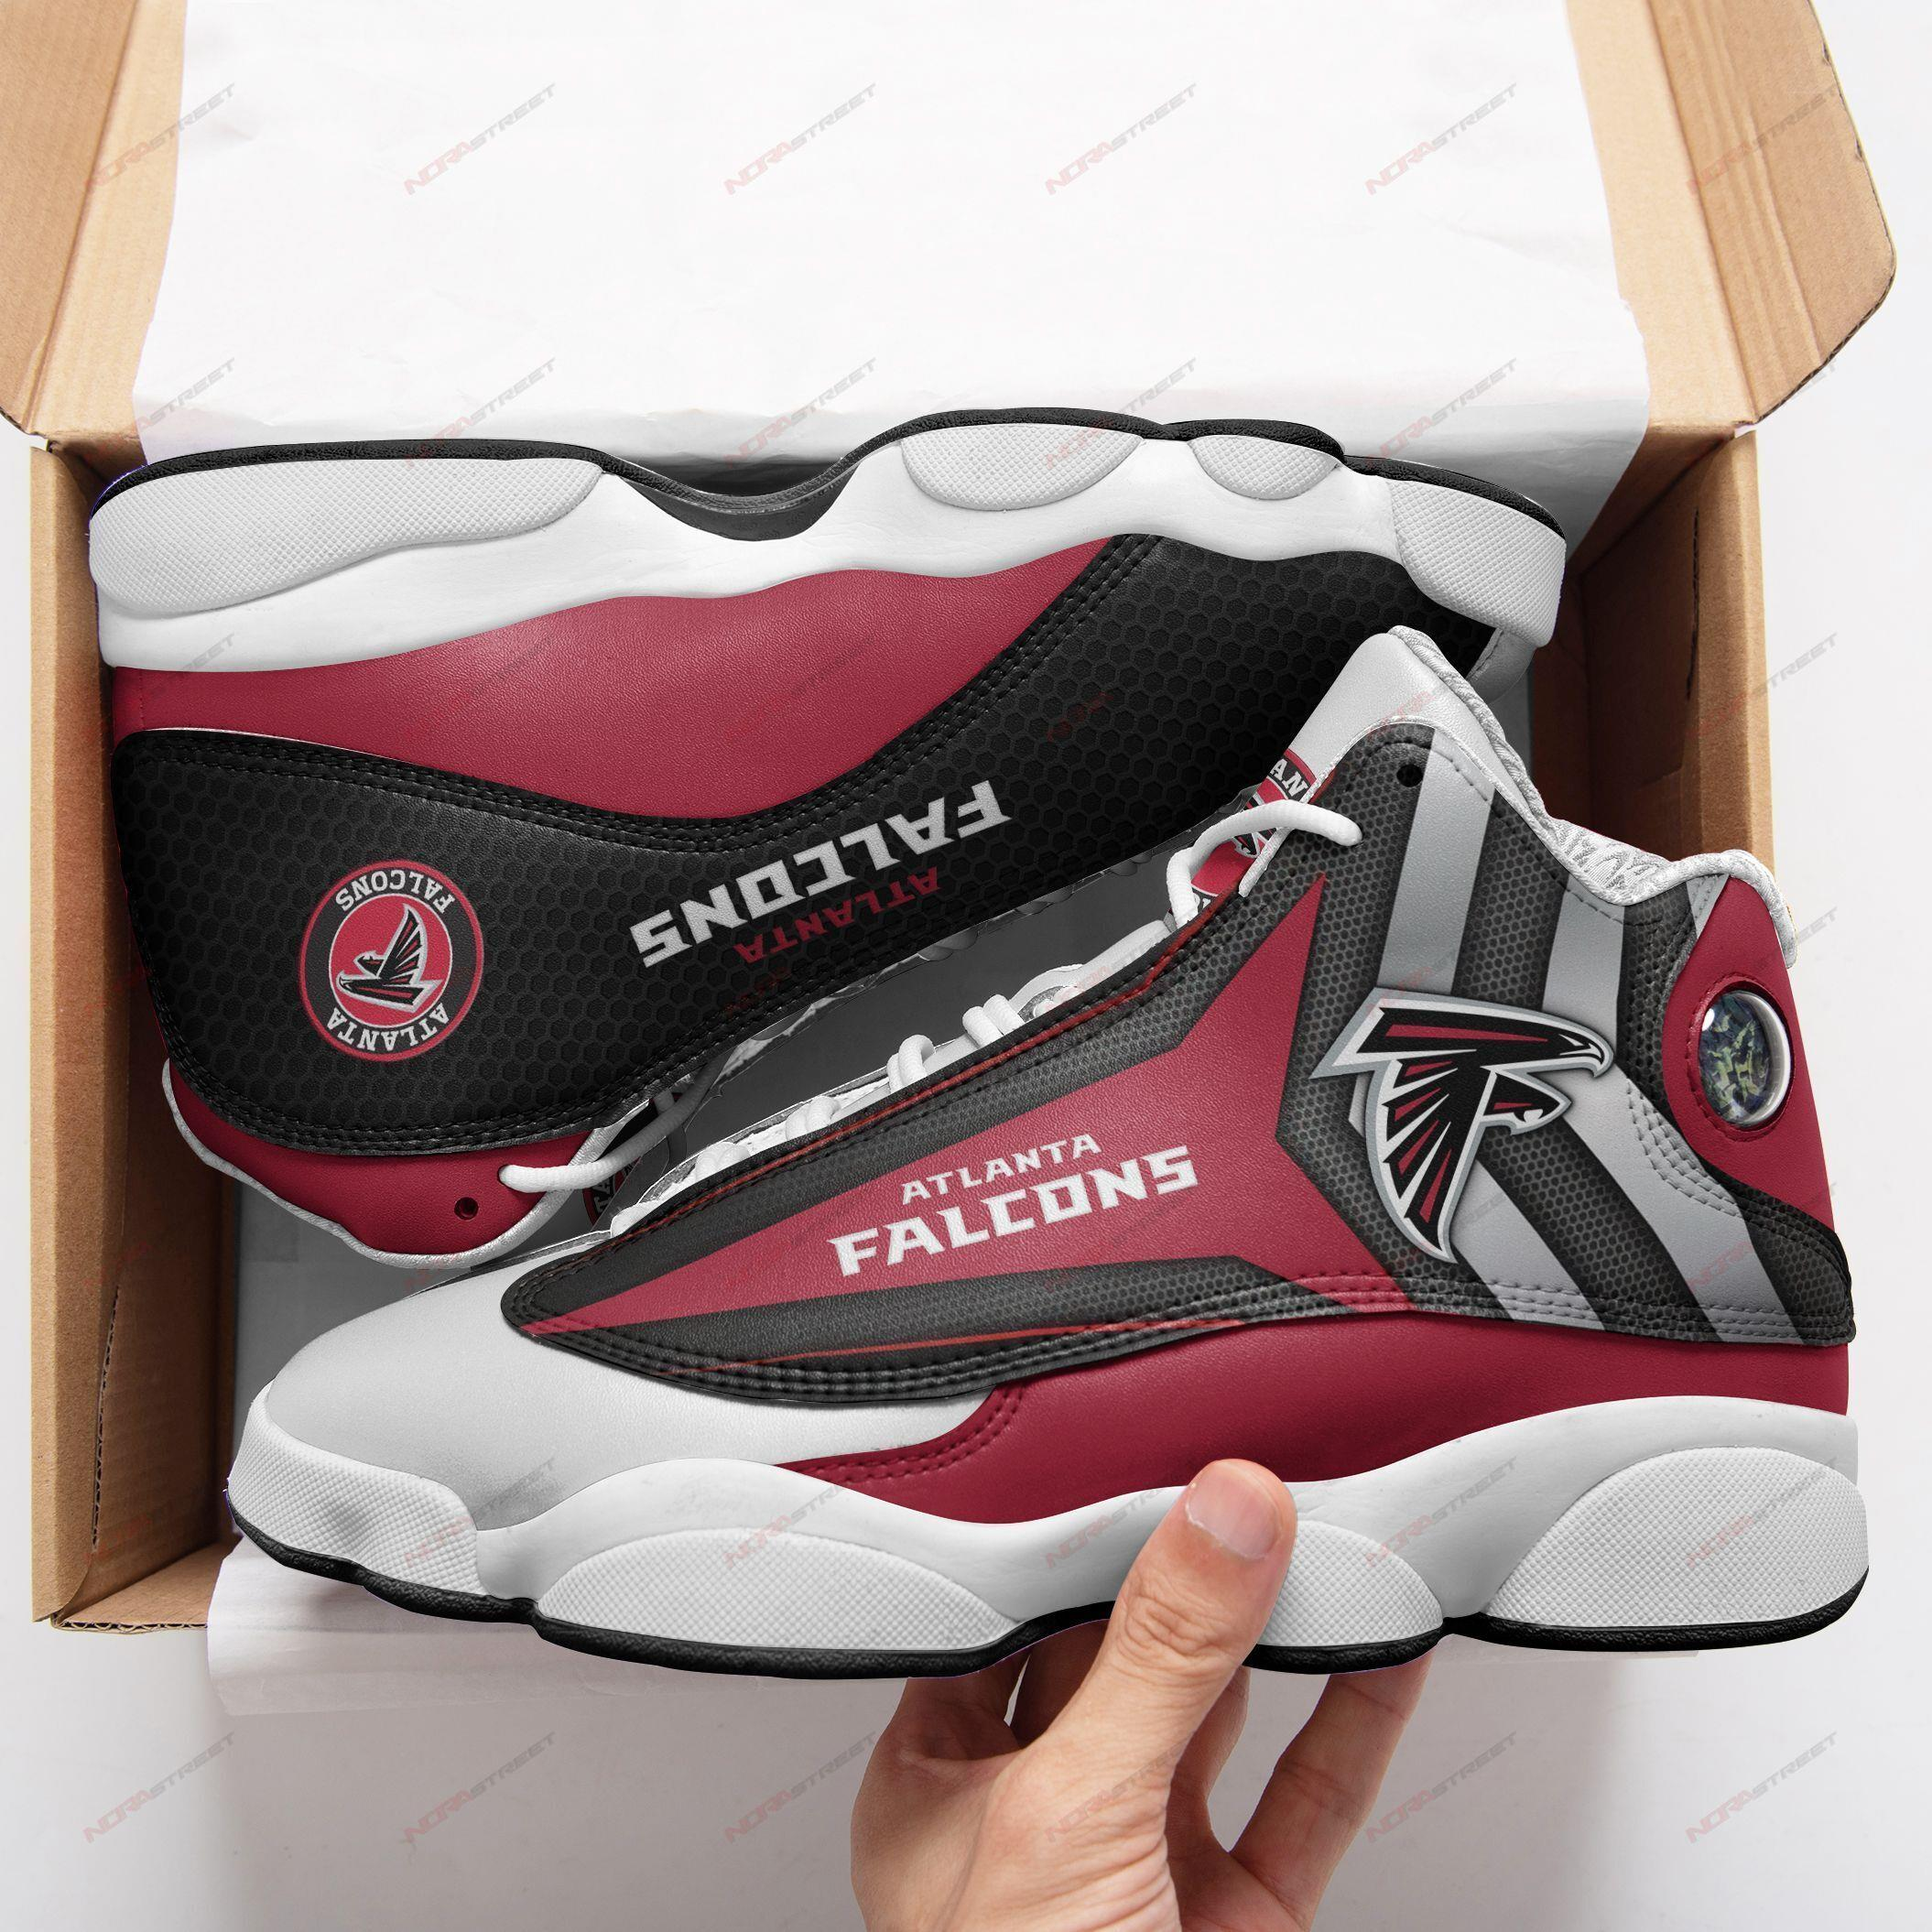 Atlanta Falcons Air Jordan 13 Sneakers Sport Shoes